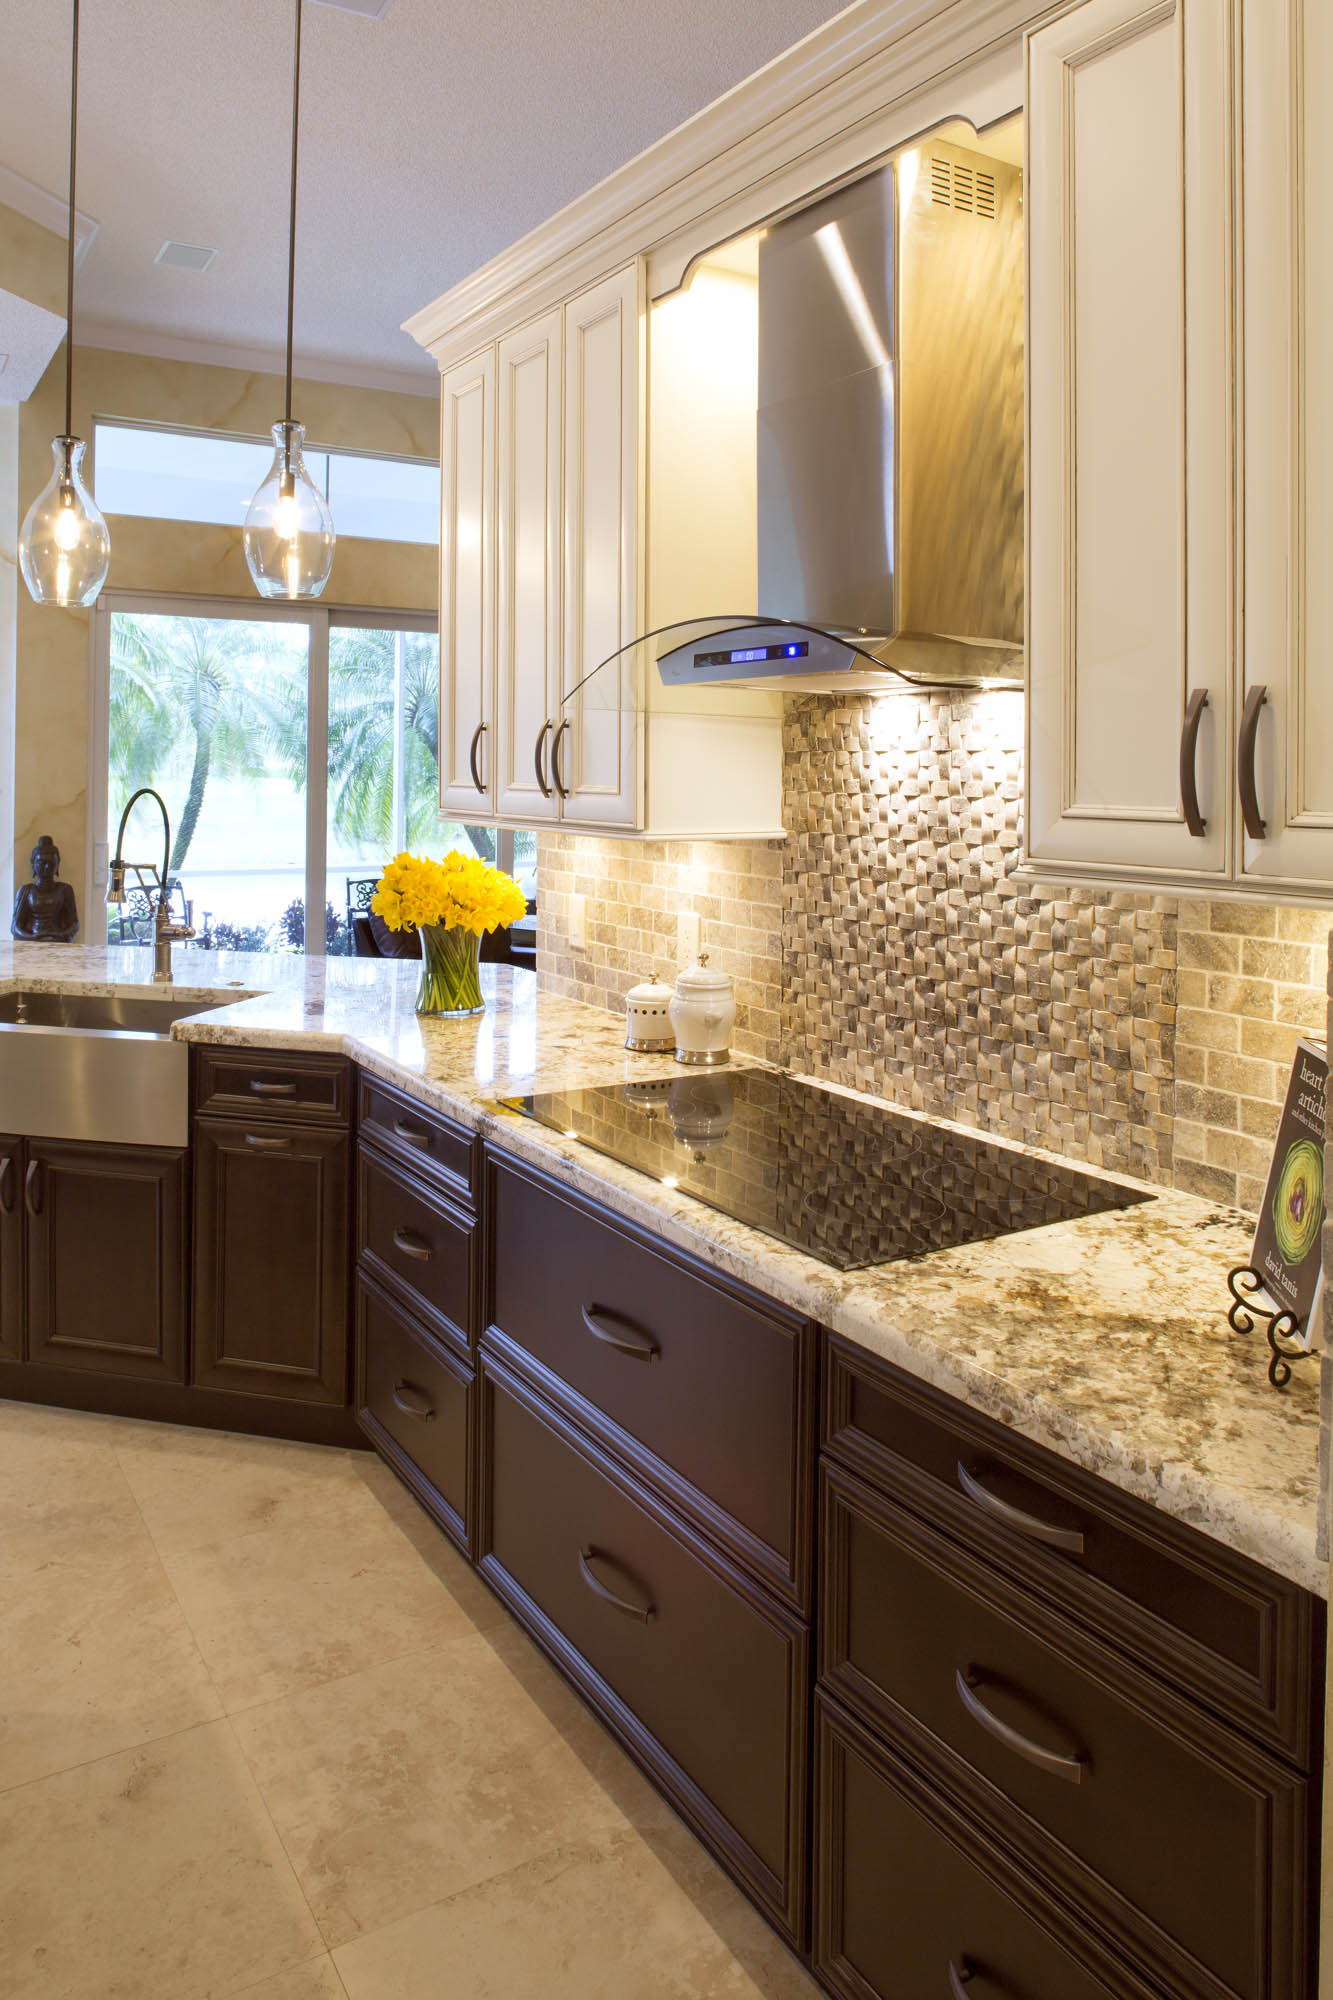 Stained kitchen base cabinets in Espresso by Showplace Cabinetry - view 2